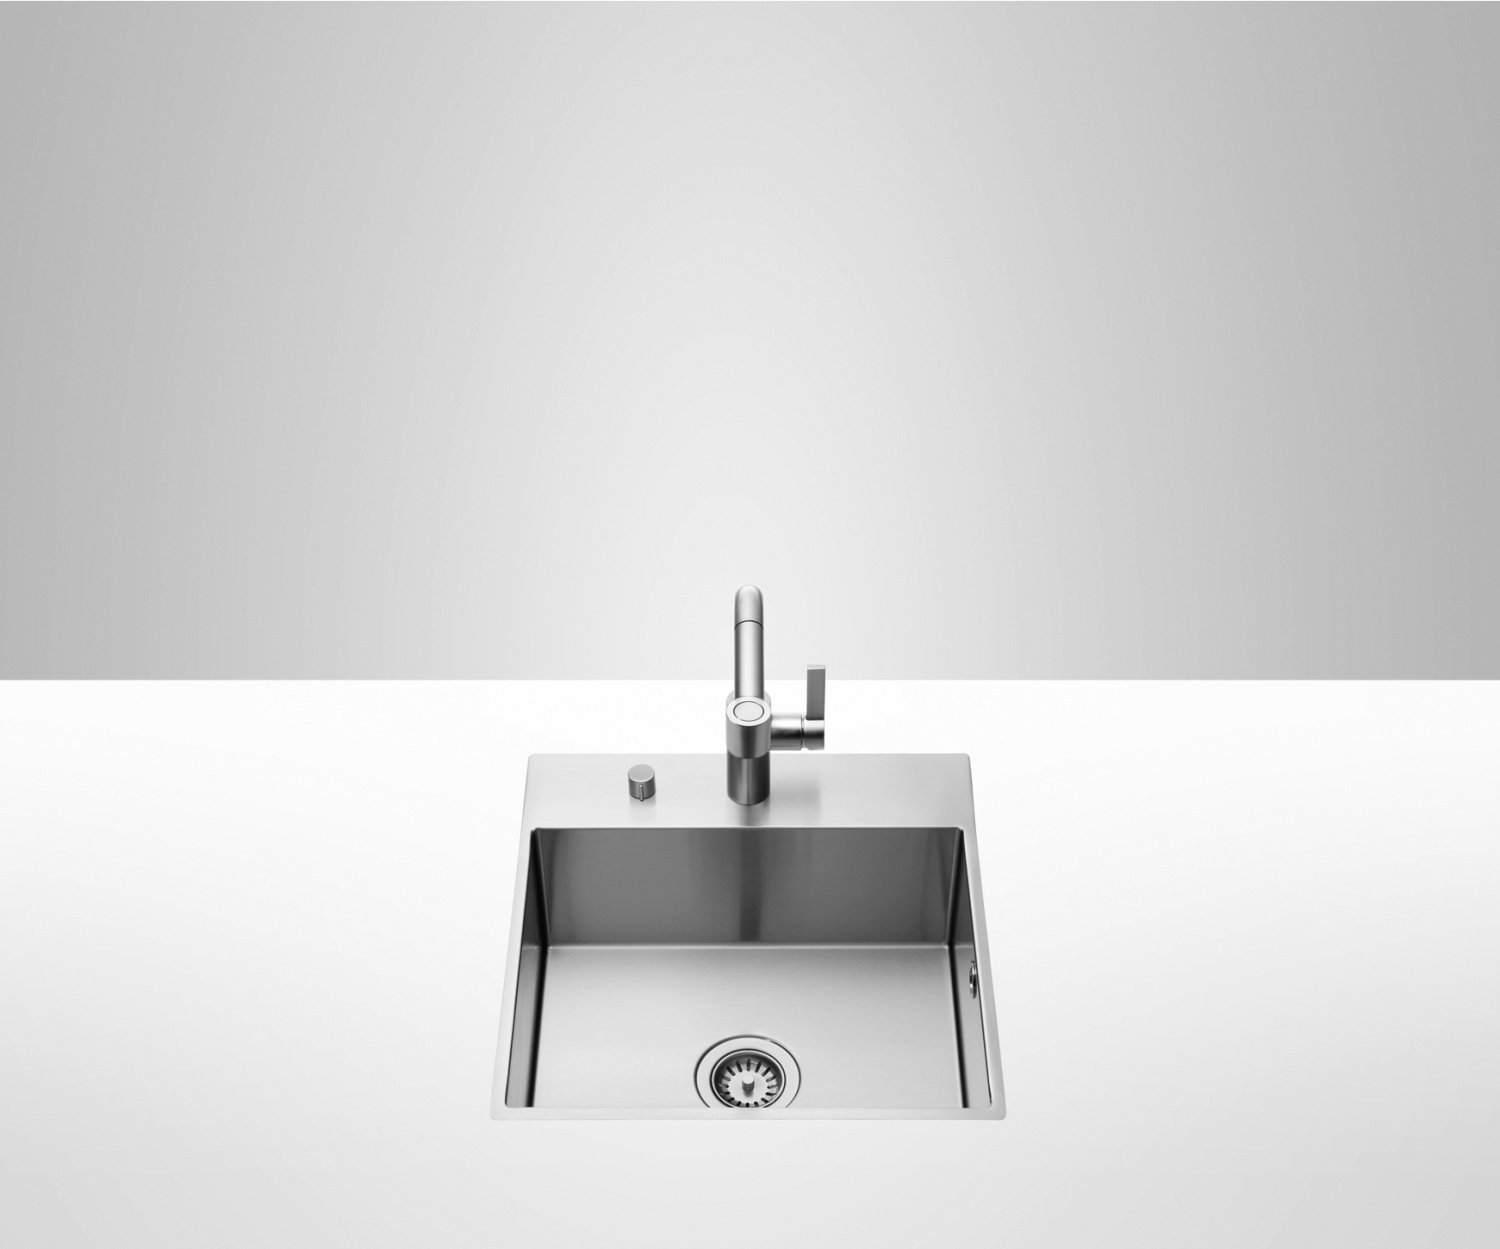 Single sink with tap hole bank - matt high-grade steel